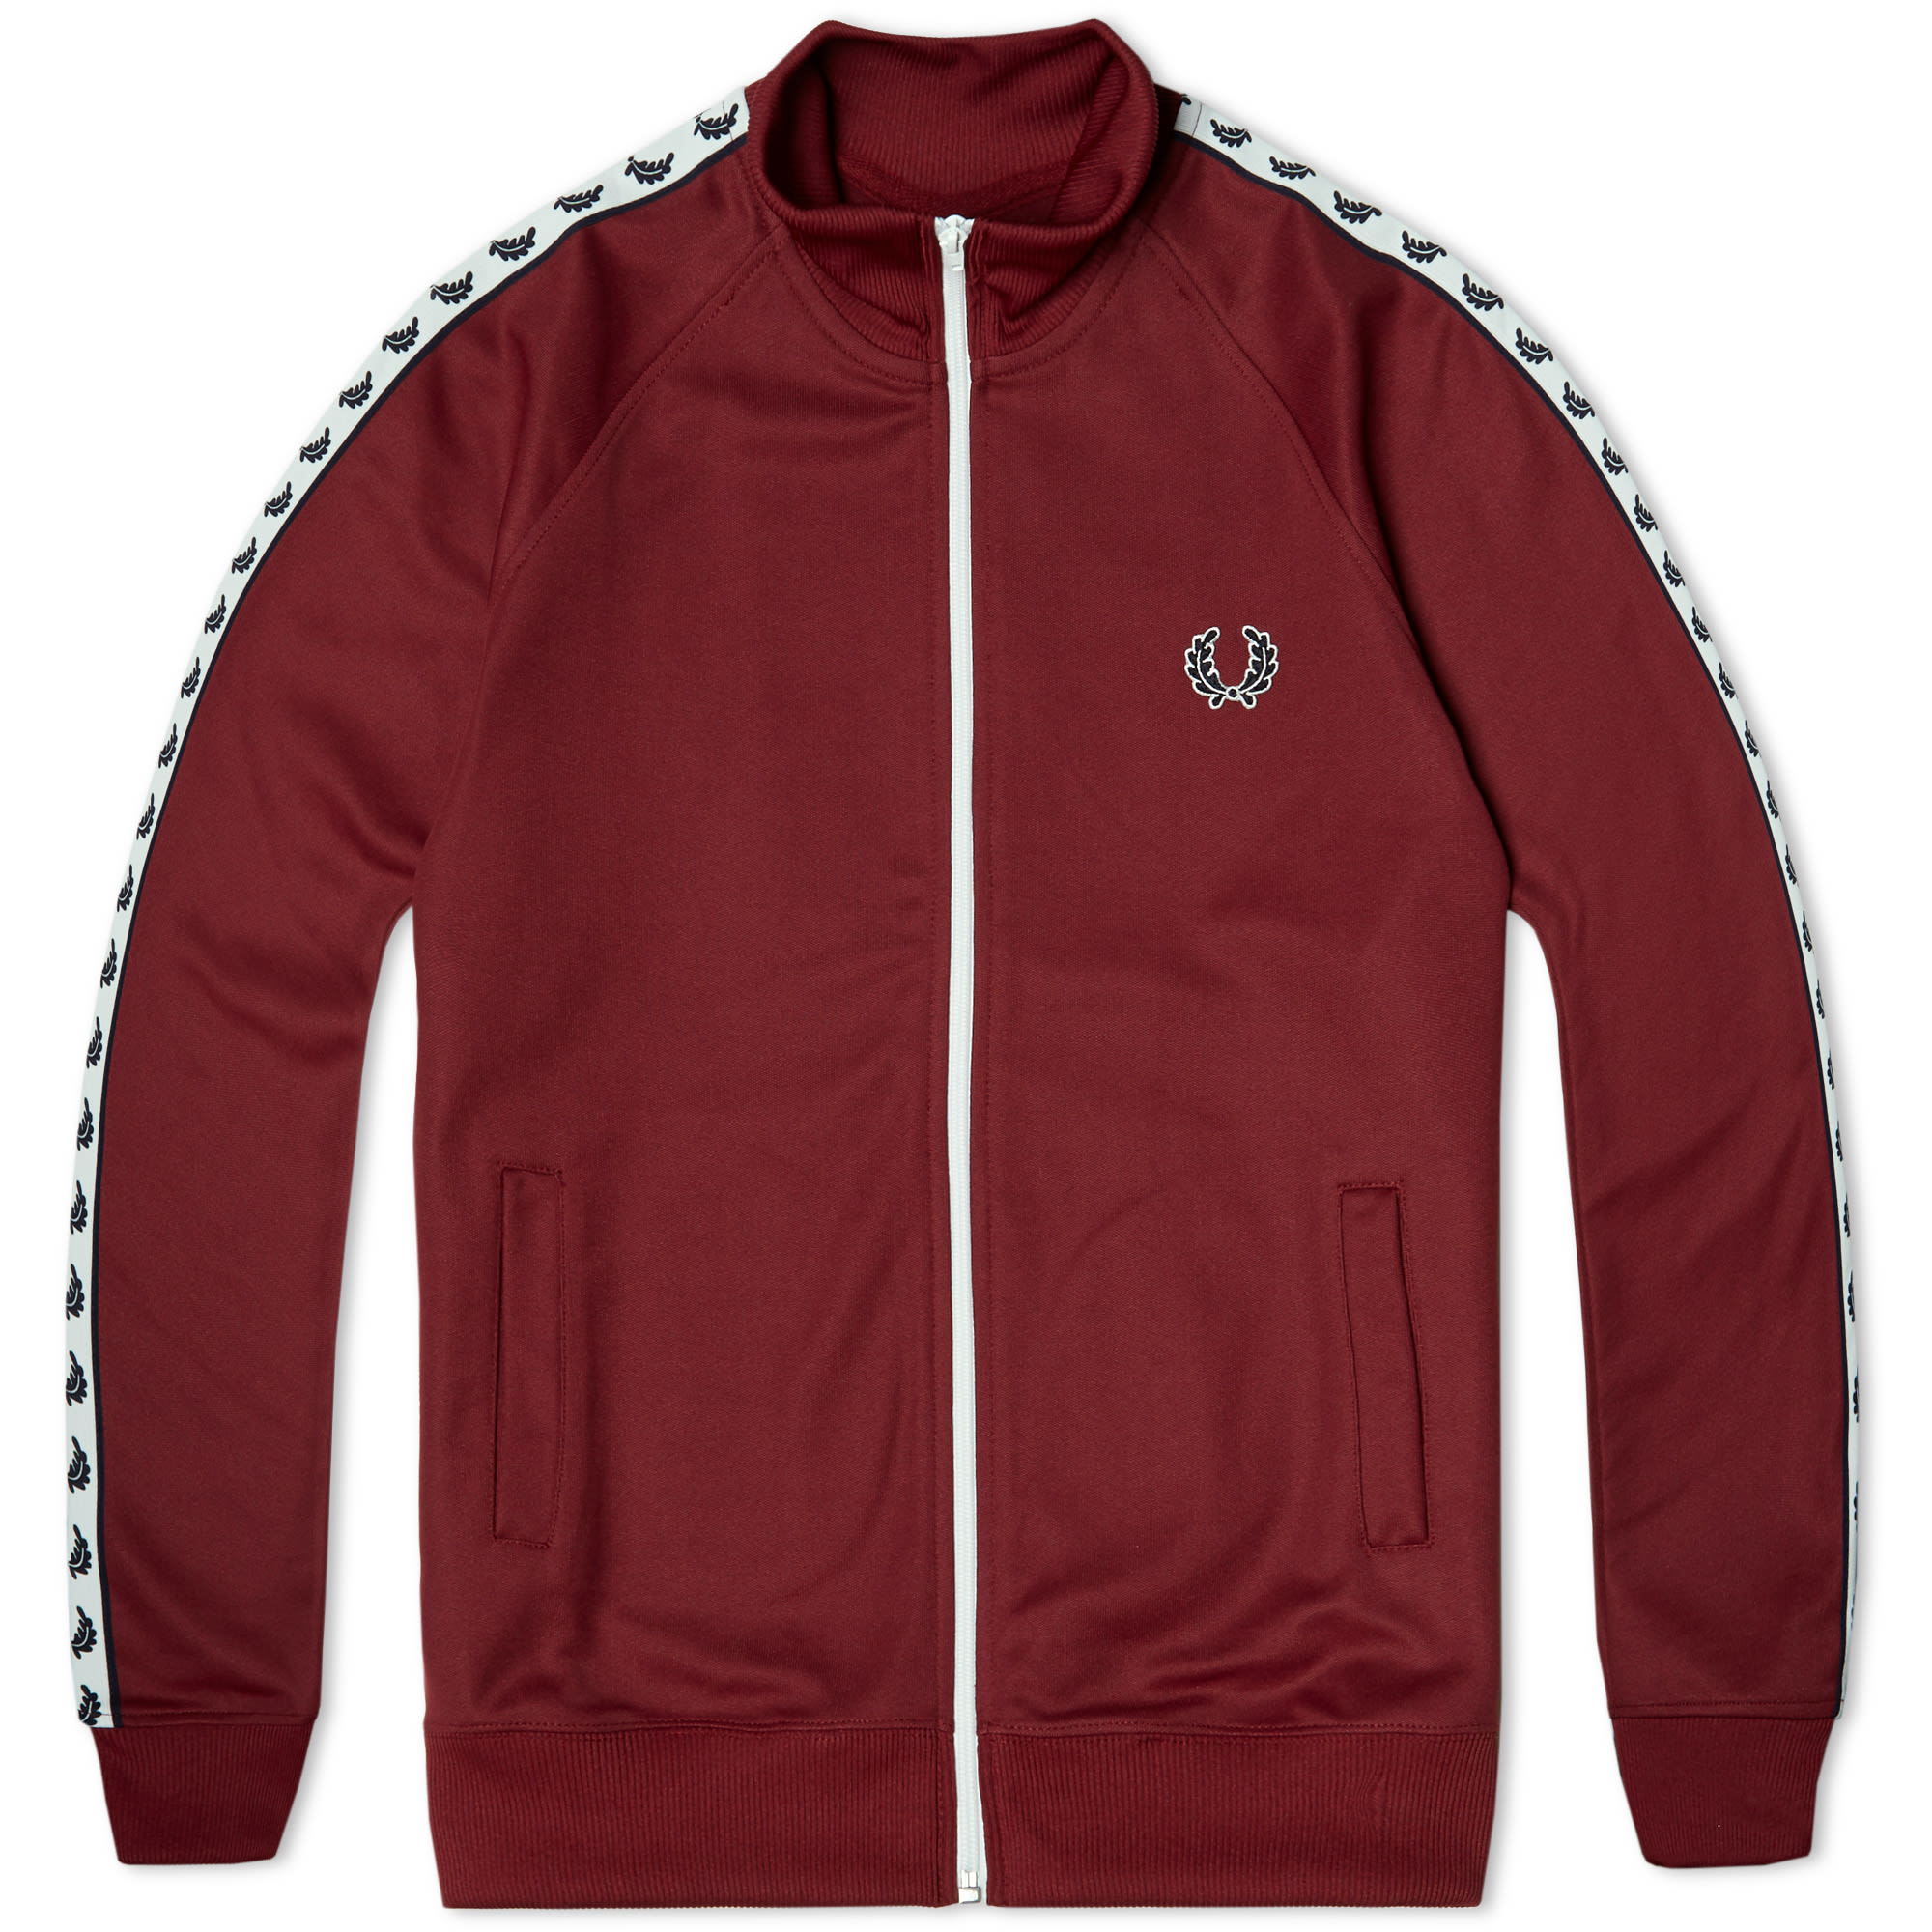 Fred perry womens coats